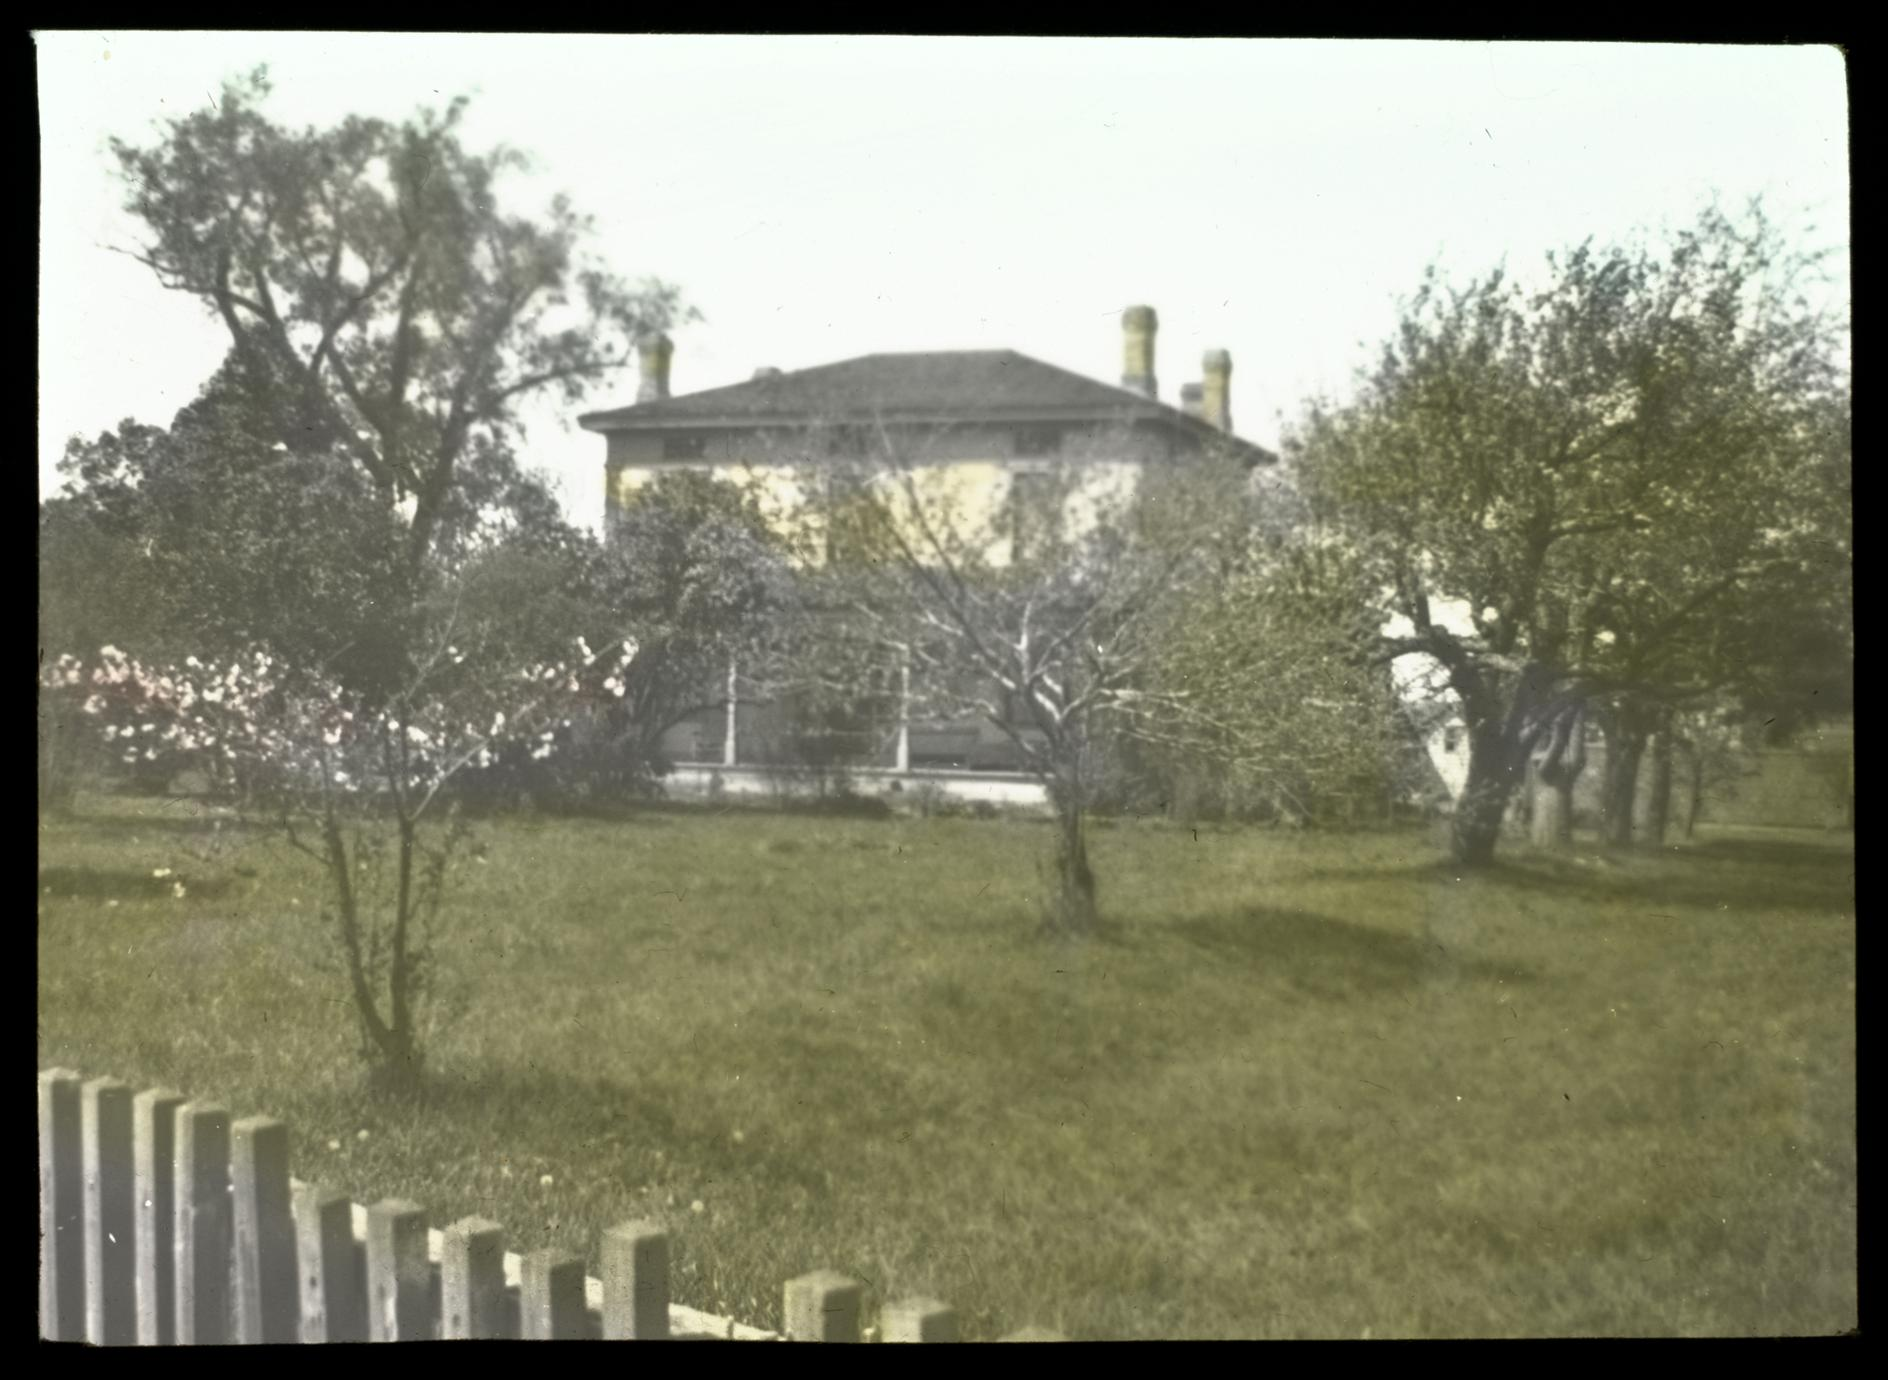 Home of Charles A. Hastings